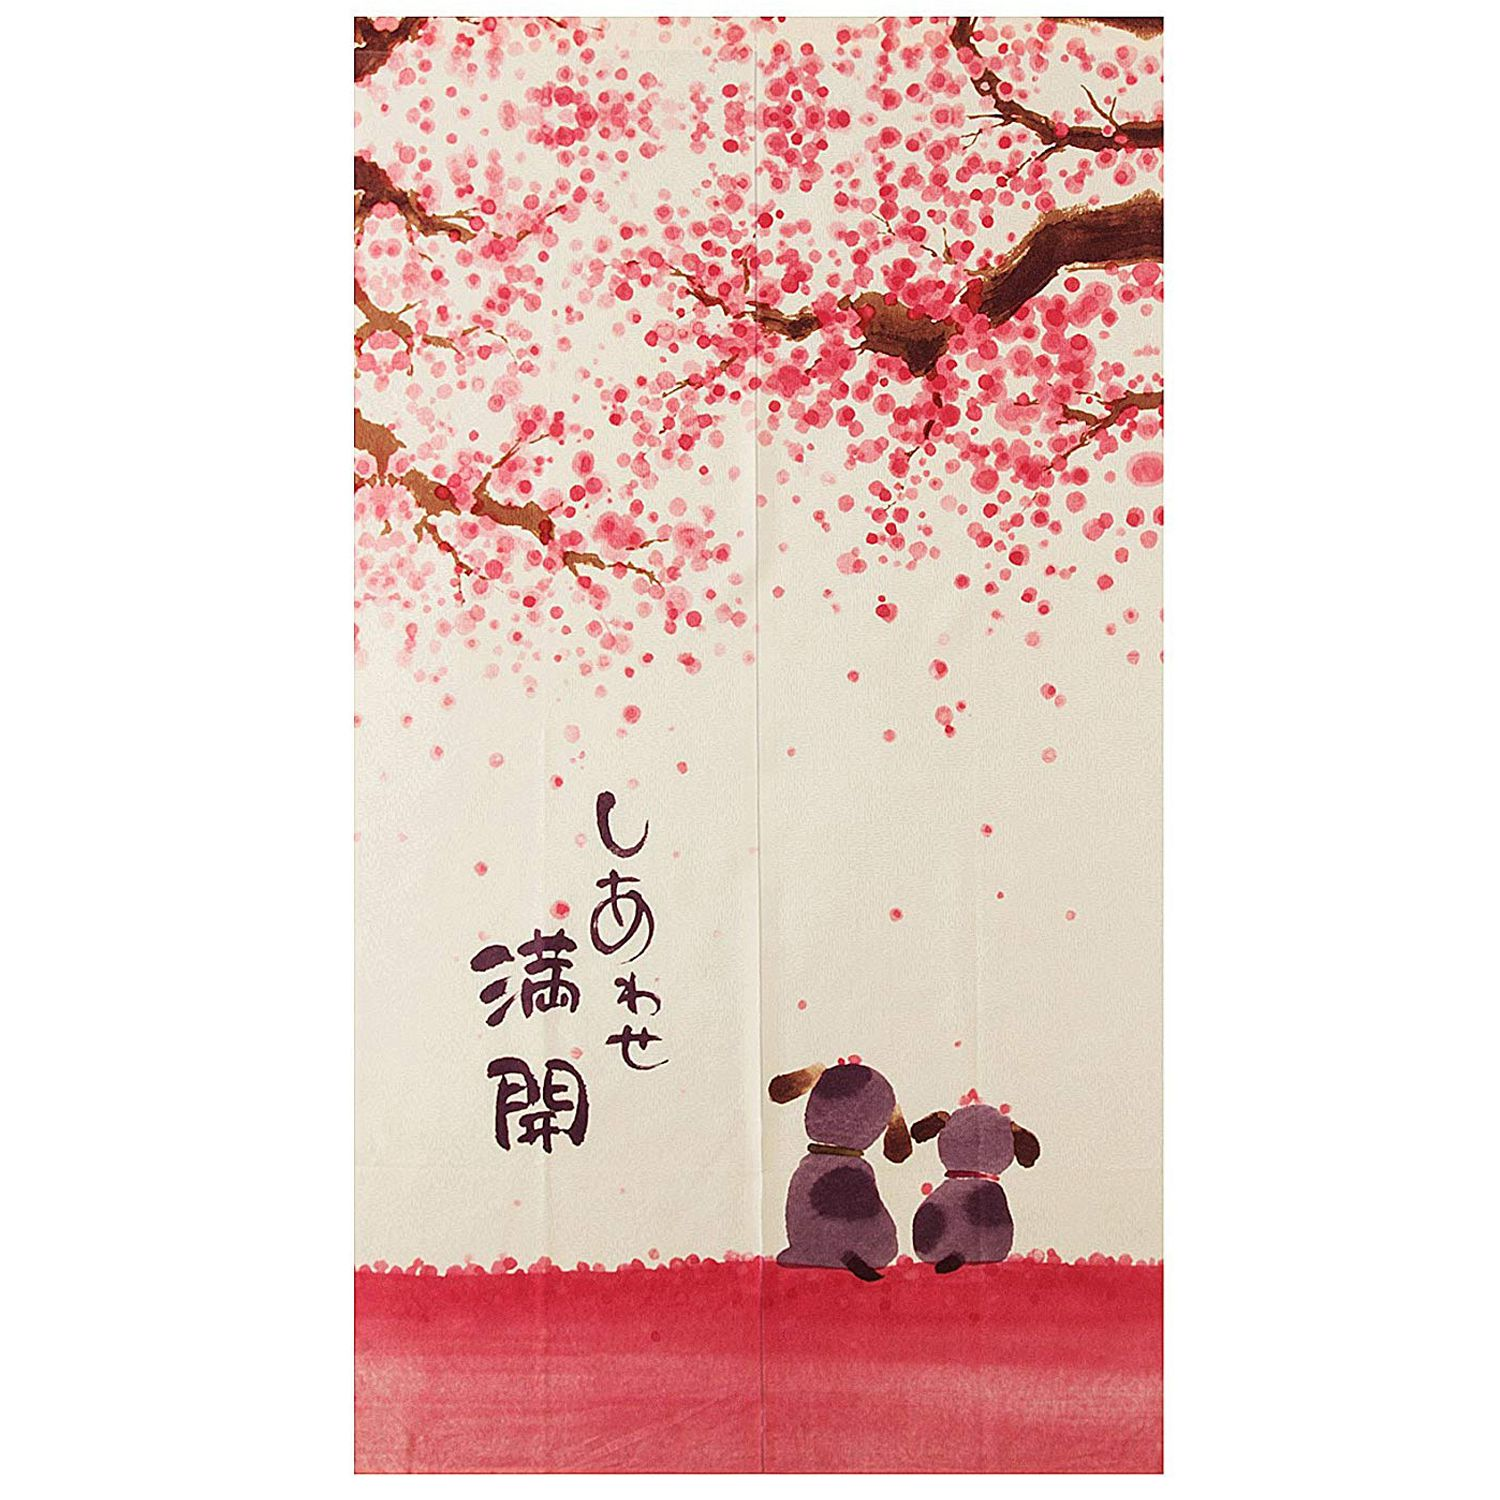 ELEG-Japanese Style Doorway Curtain 85X150Cm Happy Dogs Cherry Blossom